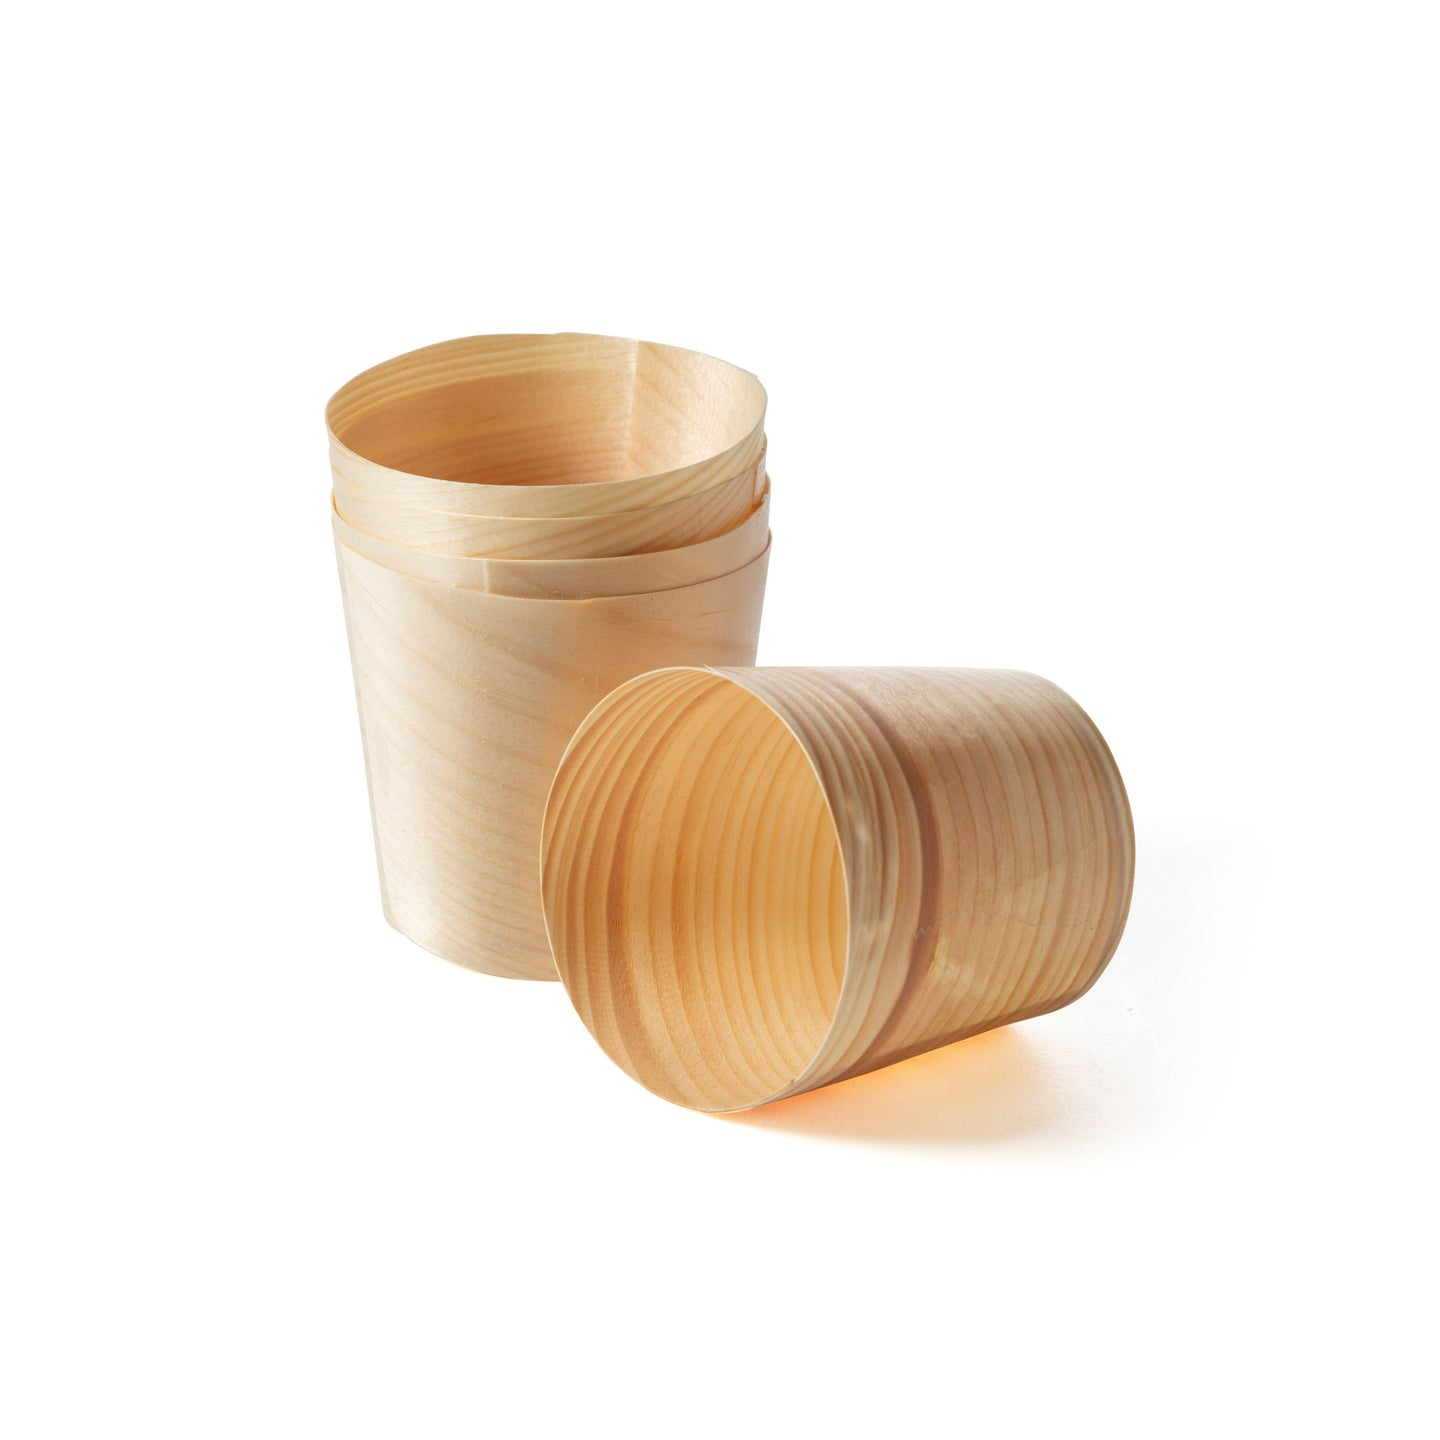 Lightweight and durable disposable wooden pine cups can hold most liquids hot or cold.